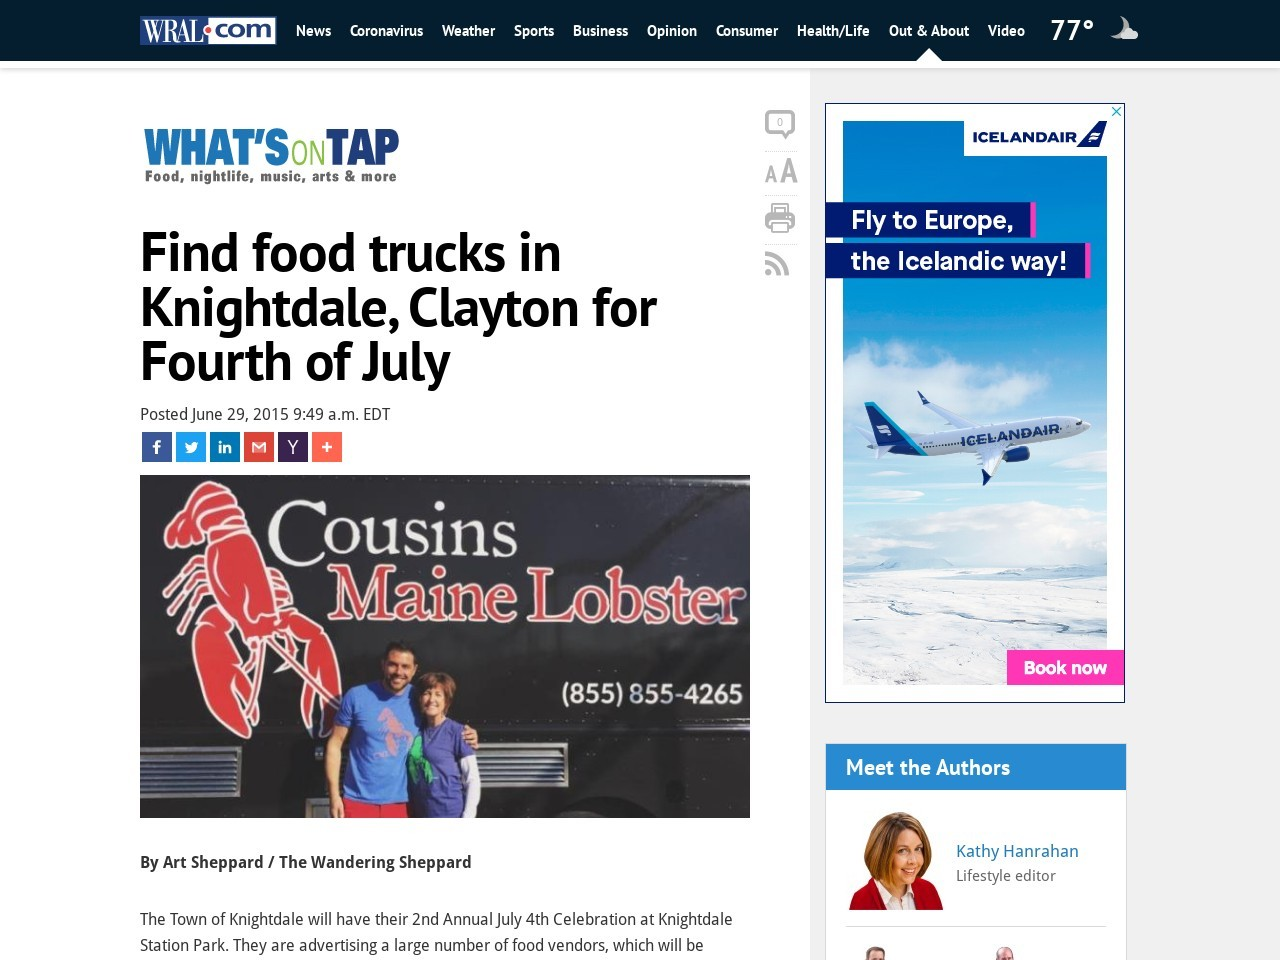 Find food trucks in Knightdale, Clayton for Fourth of July